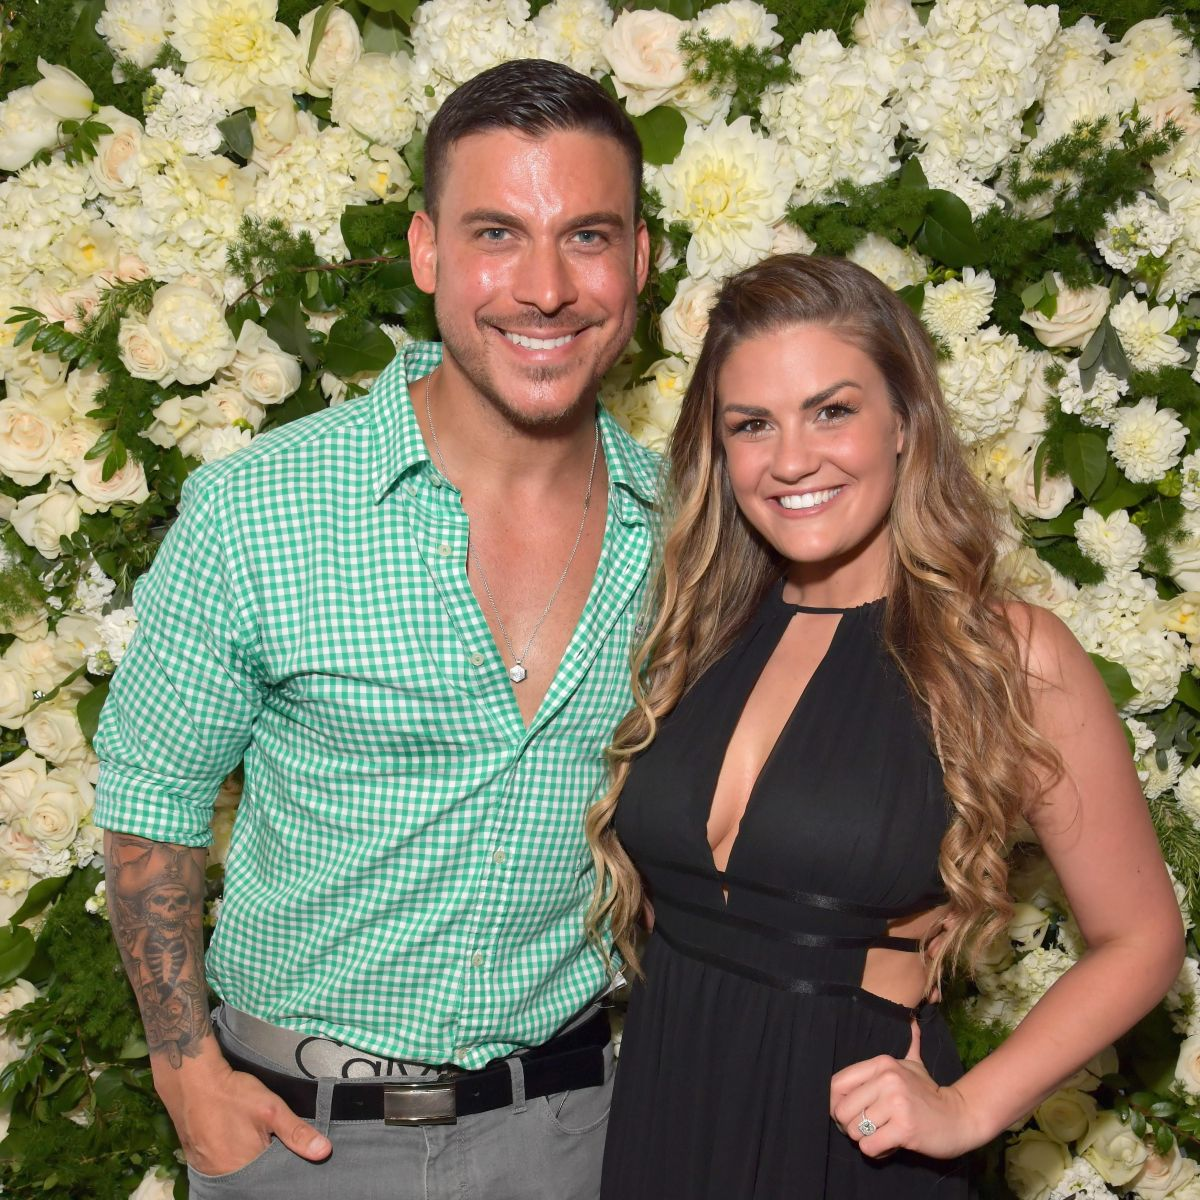 Vanderpump Rules Stars Brittany Cartwright and Jax Taylor Are Married